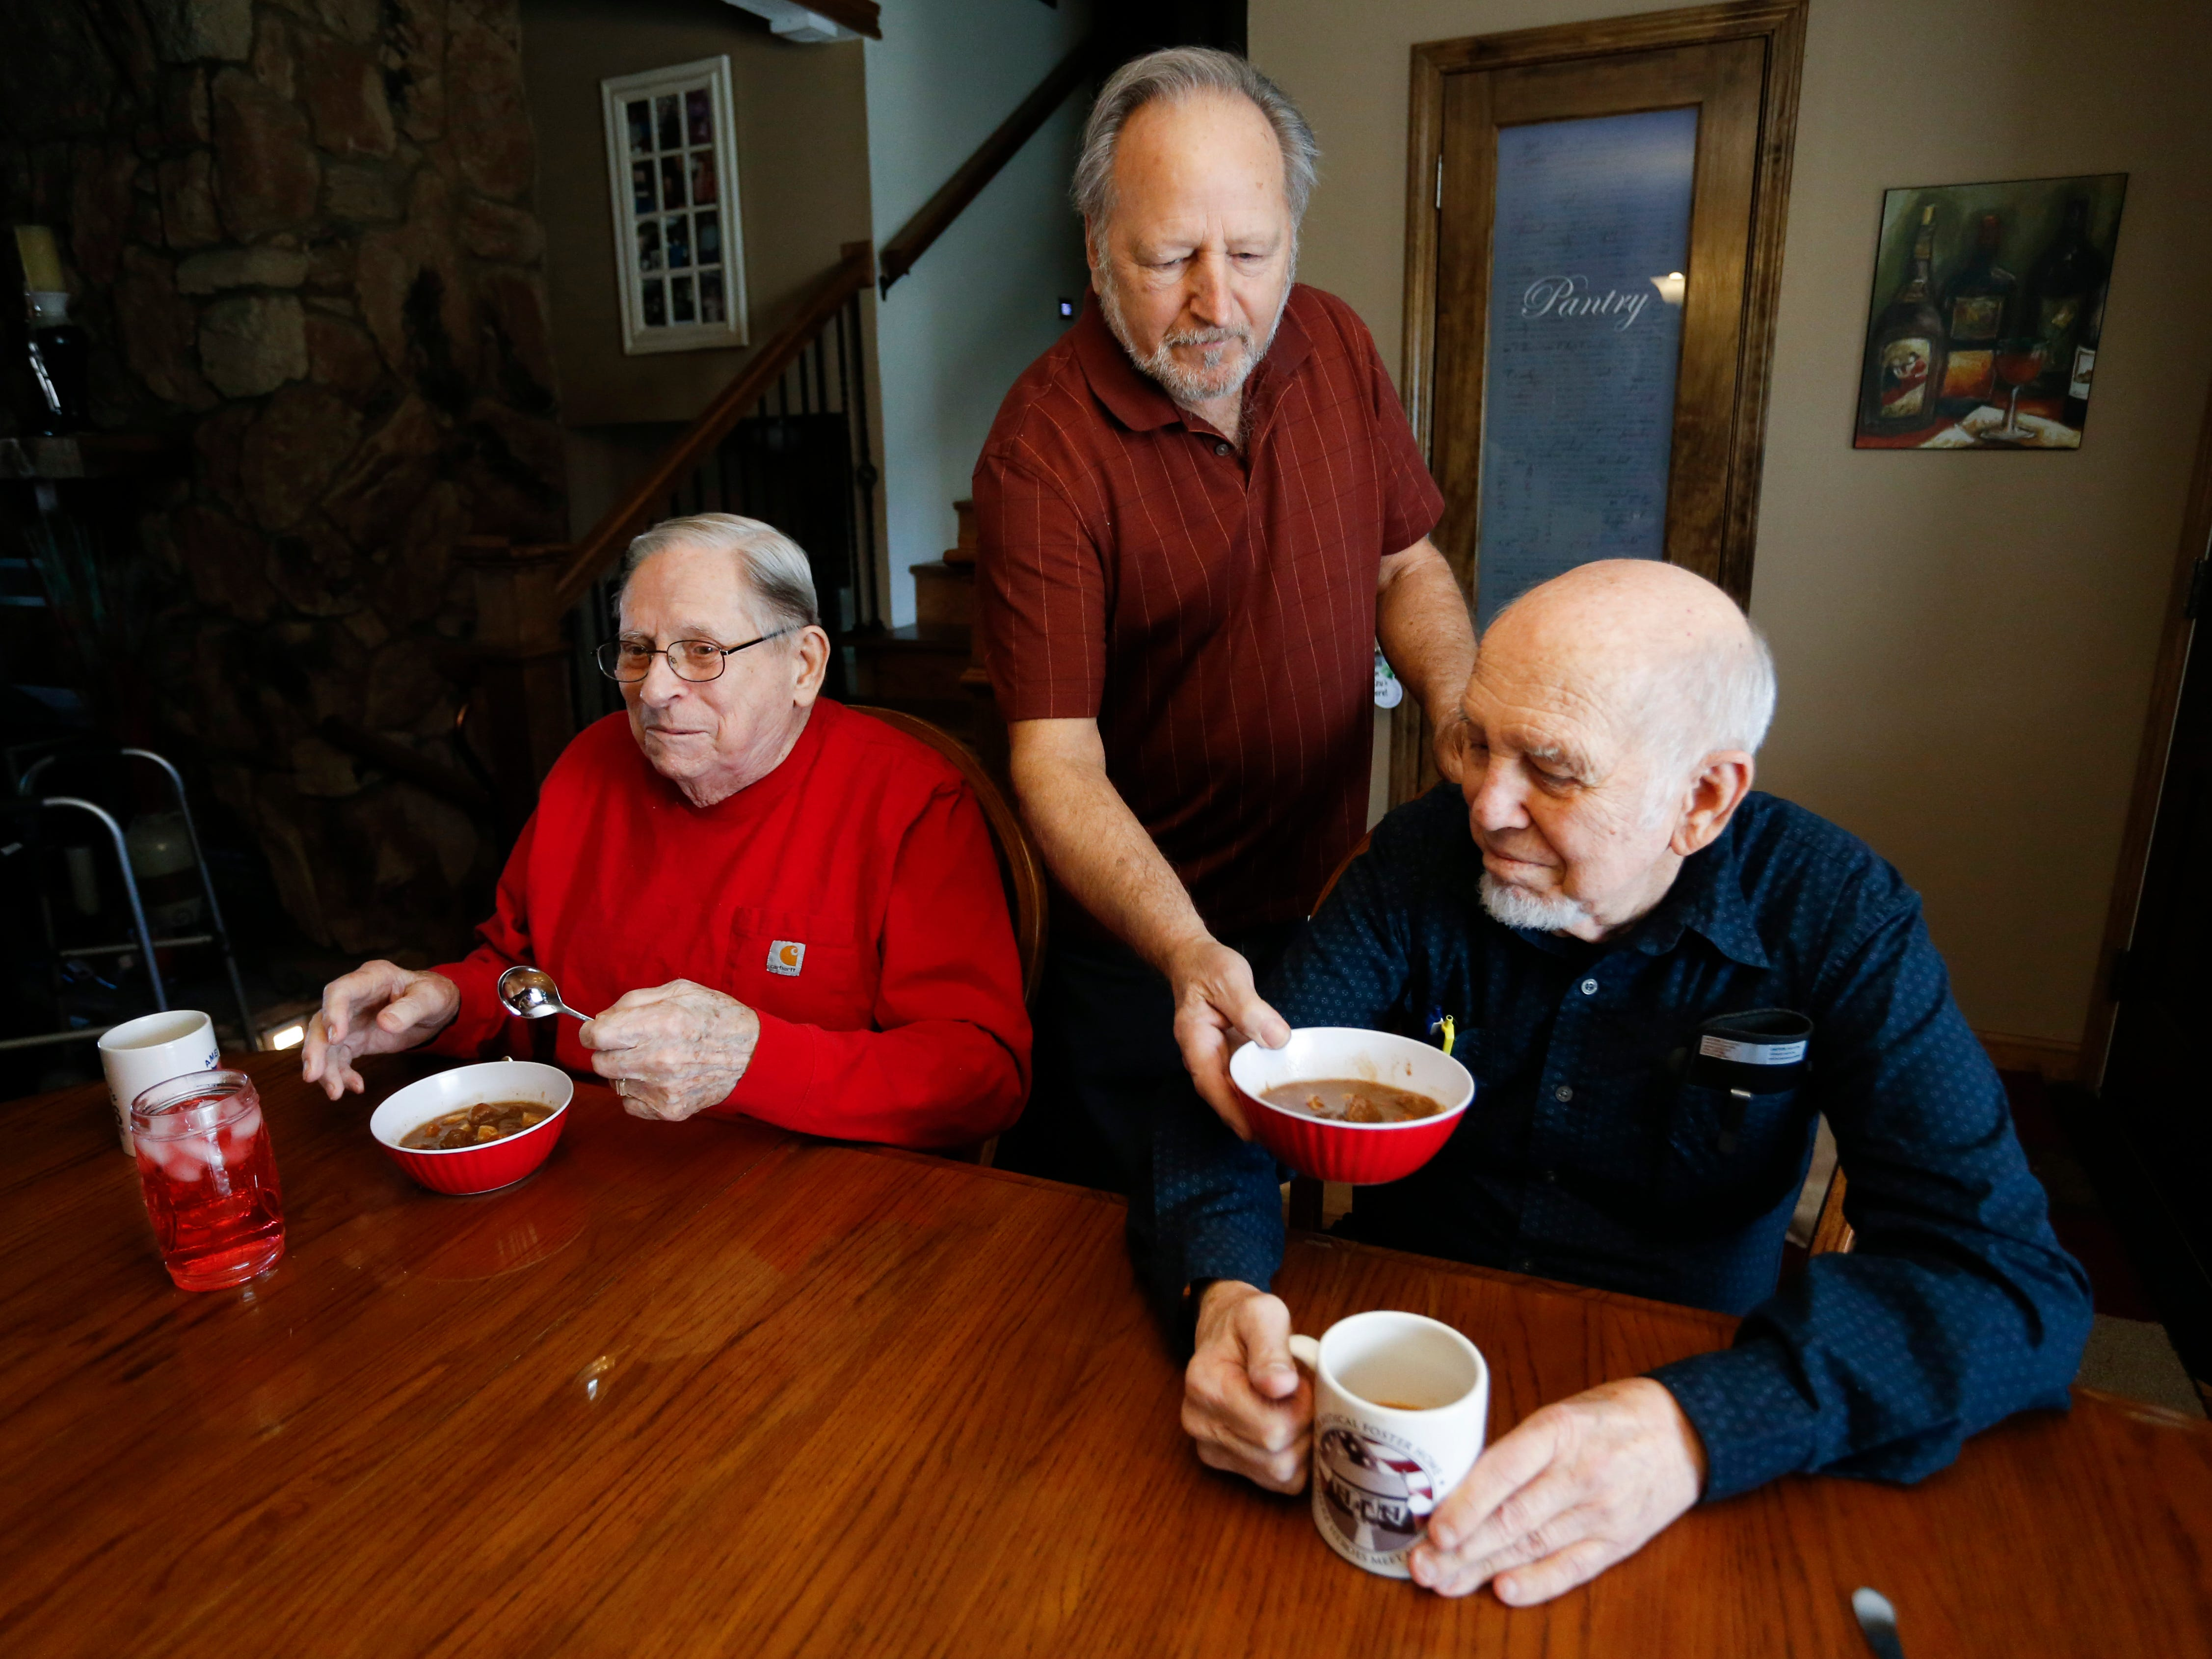 Frank Keim brings a bowl of stew to veterans Donald Gundlach (left), 92, and Gene Solomon, 77, on Tuesday, Jan. 29, 2019. Keim and his wife opened up their home to veterans as part of the VA's Medical Foster Home Program.